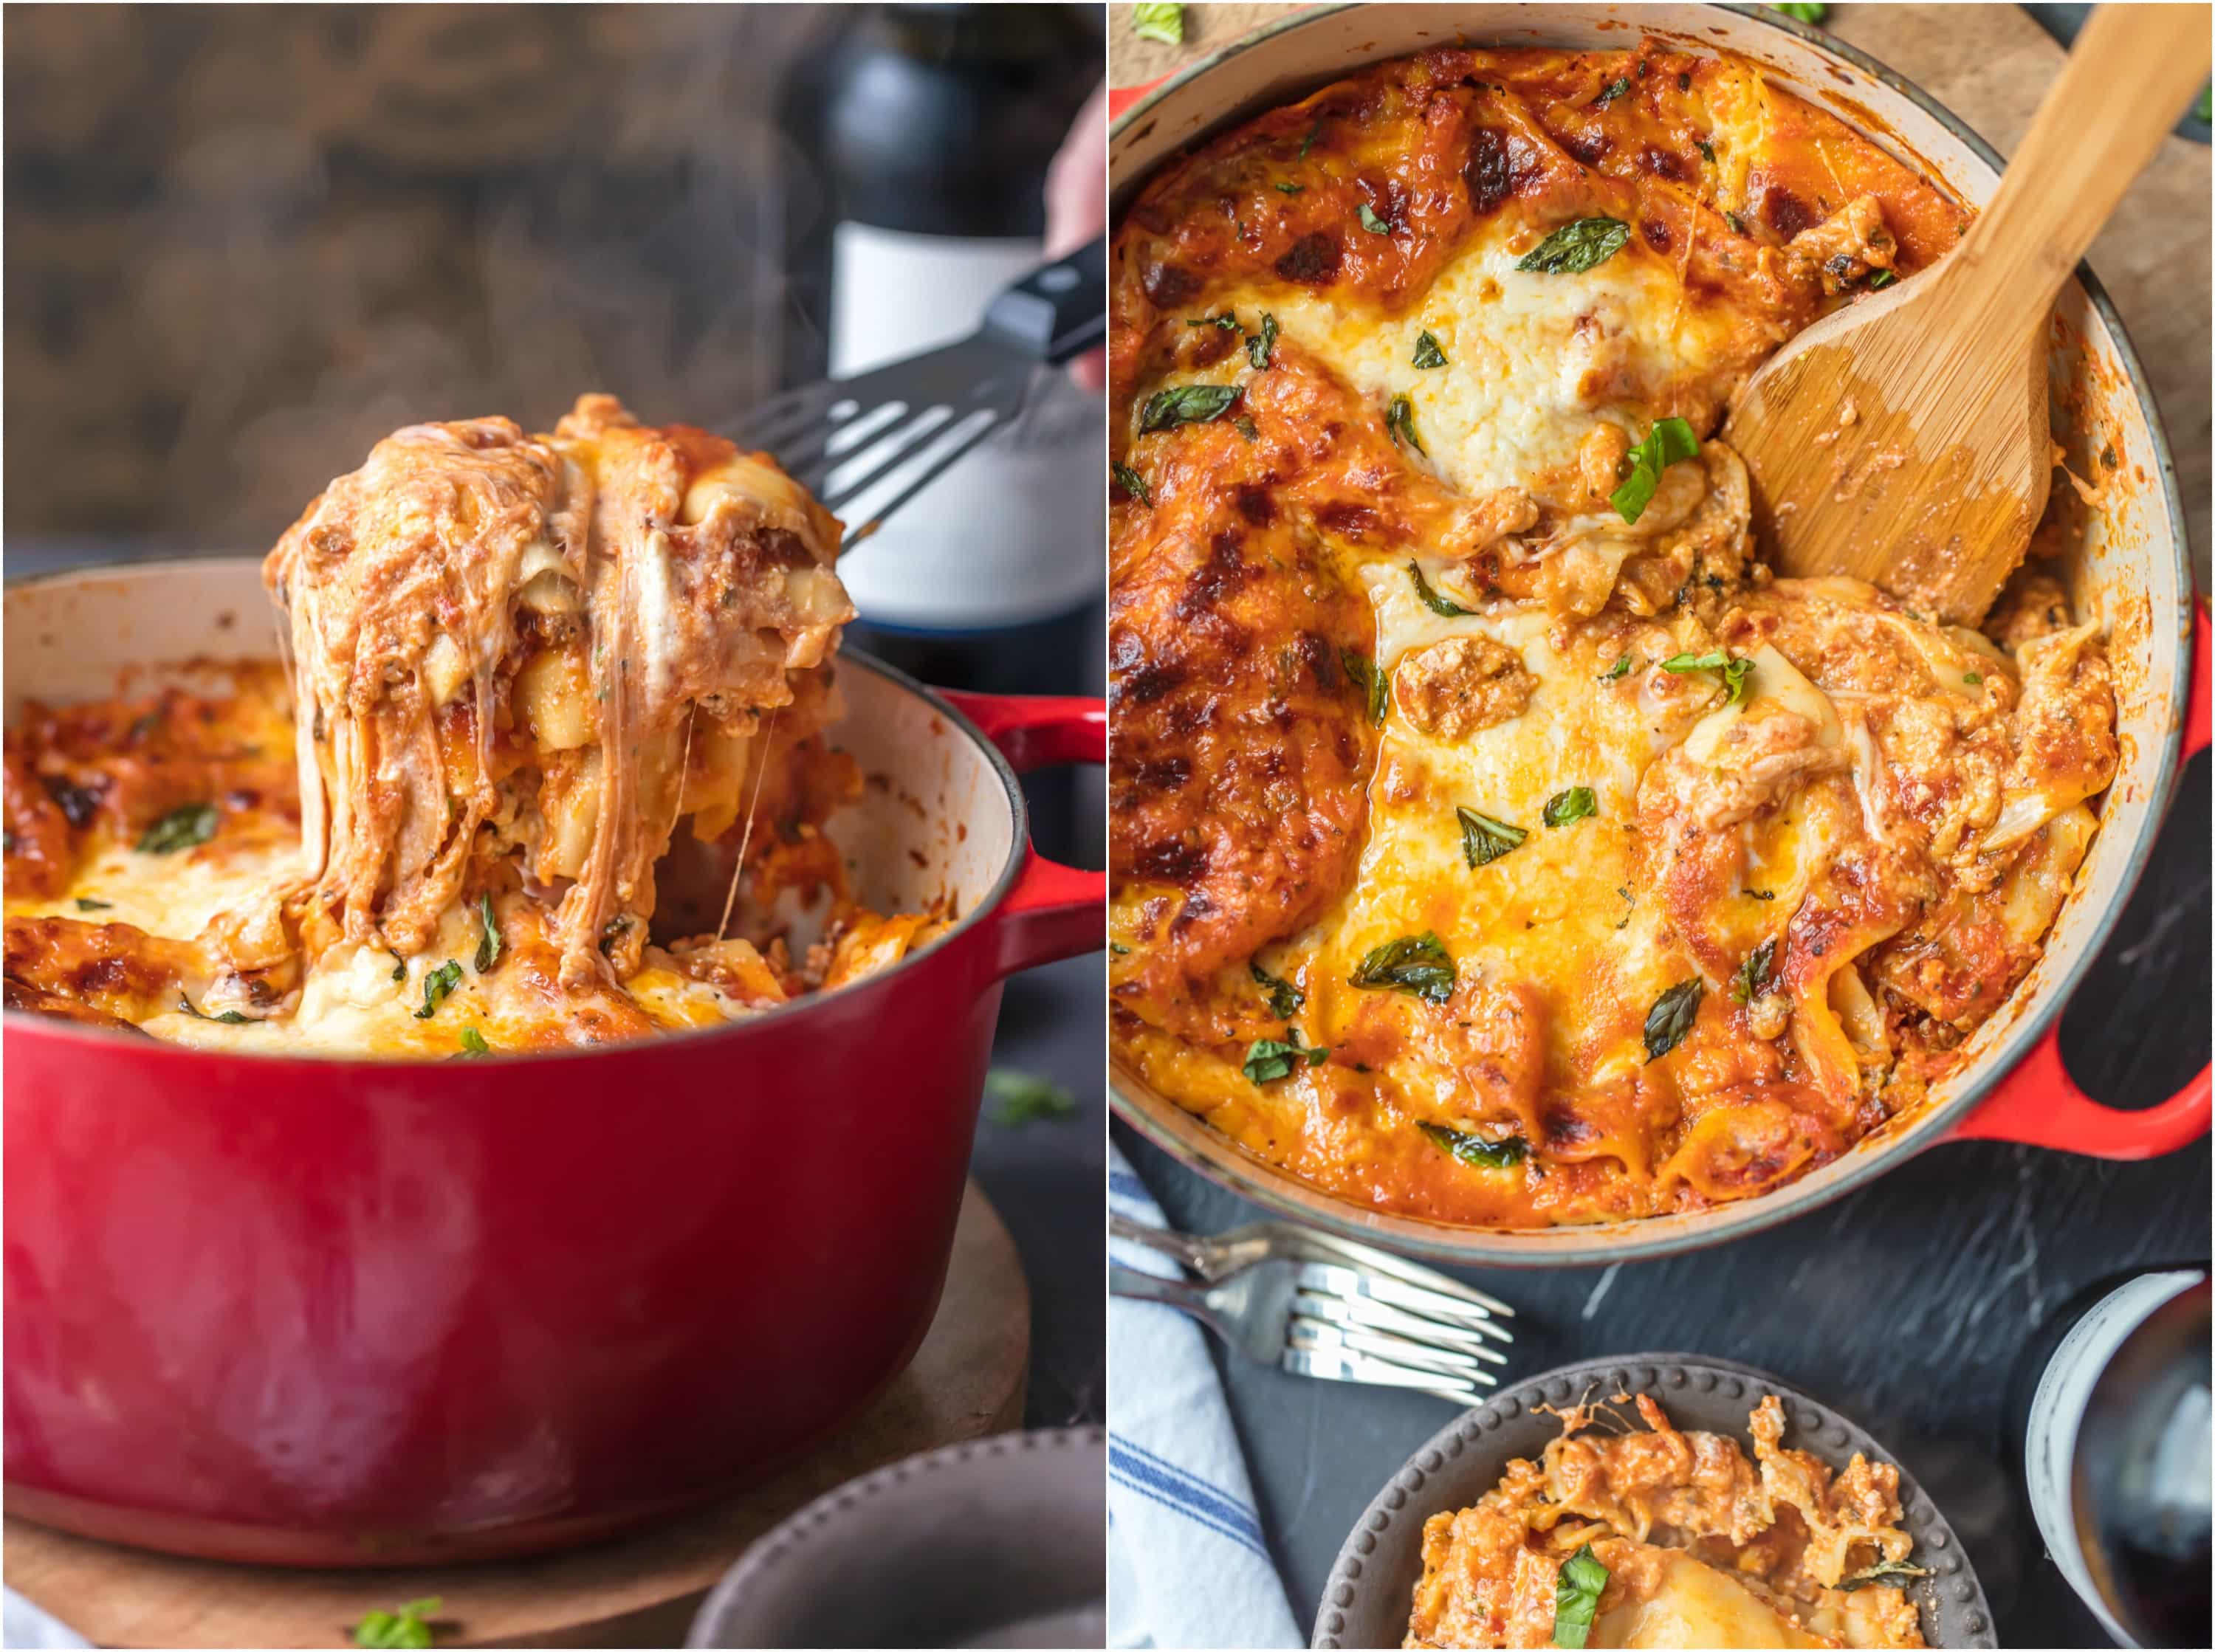 Dutch oven lasagna recipe stove top lasagna the cookie rookie dutch oven lasagna or stove top lasagna will blow your mind you forumfinder